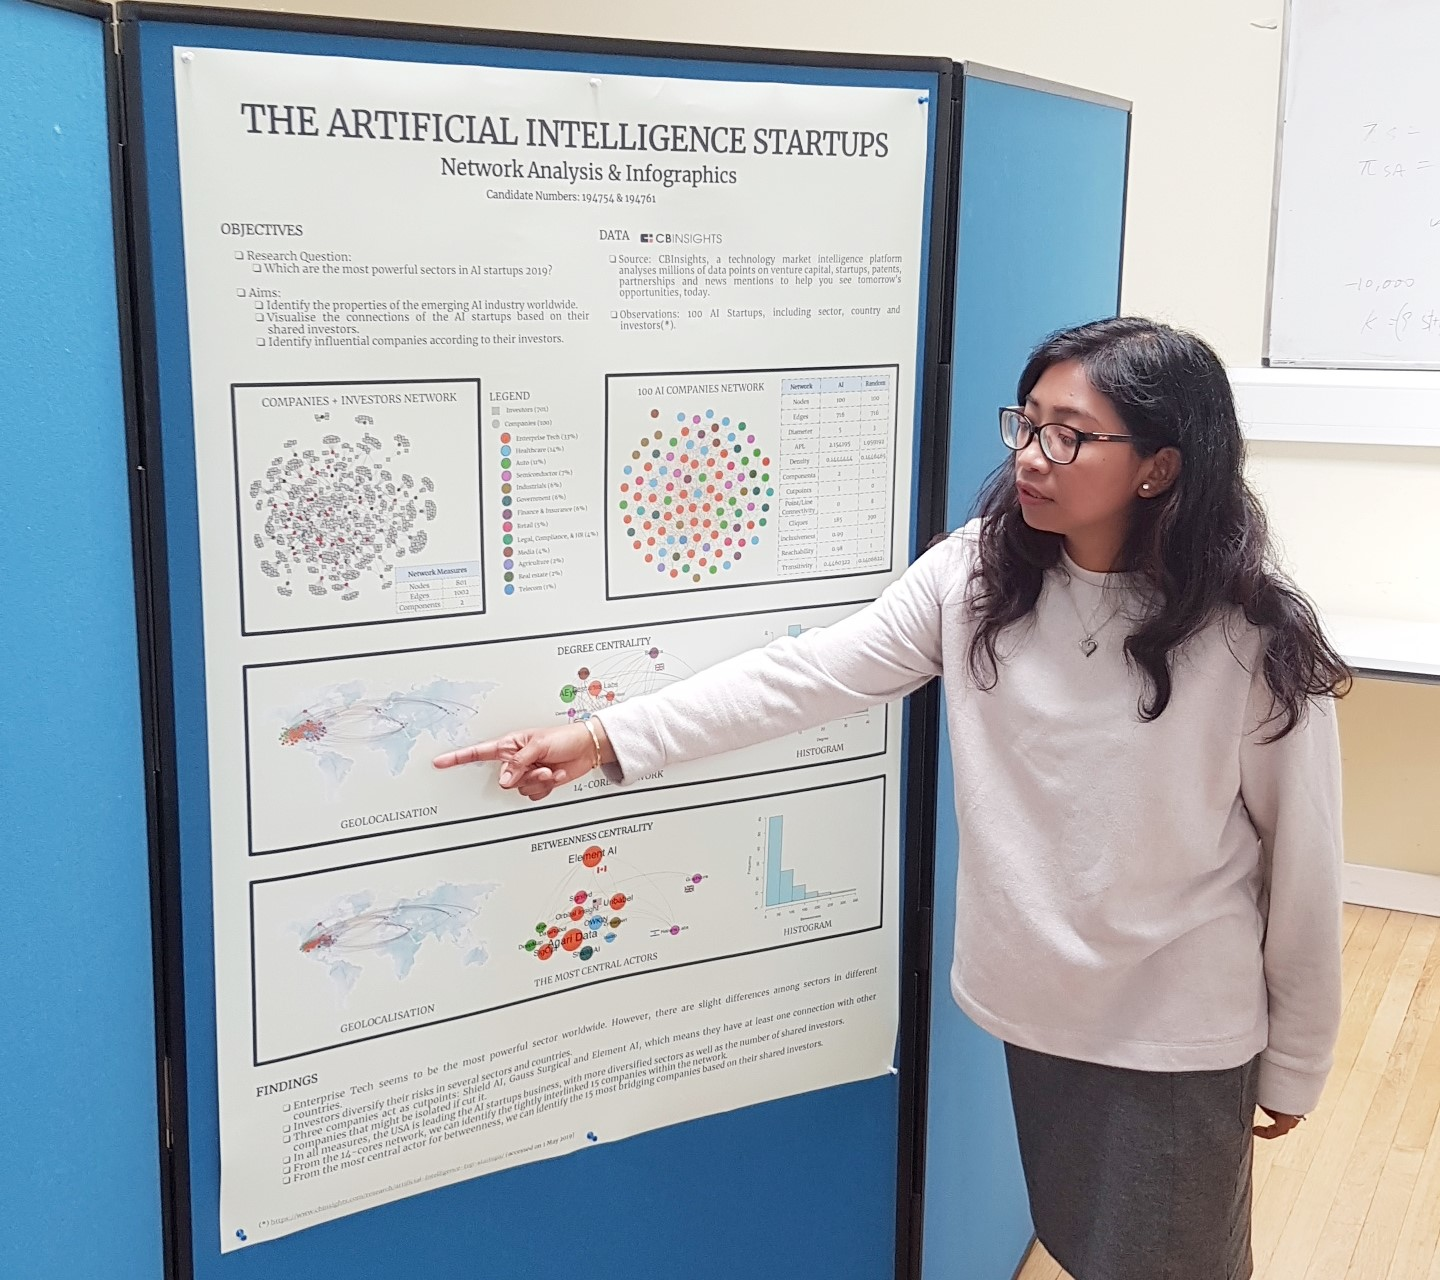 The author was presenting her poster in the Network and Analysis Infographic class.